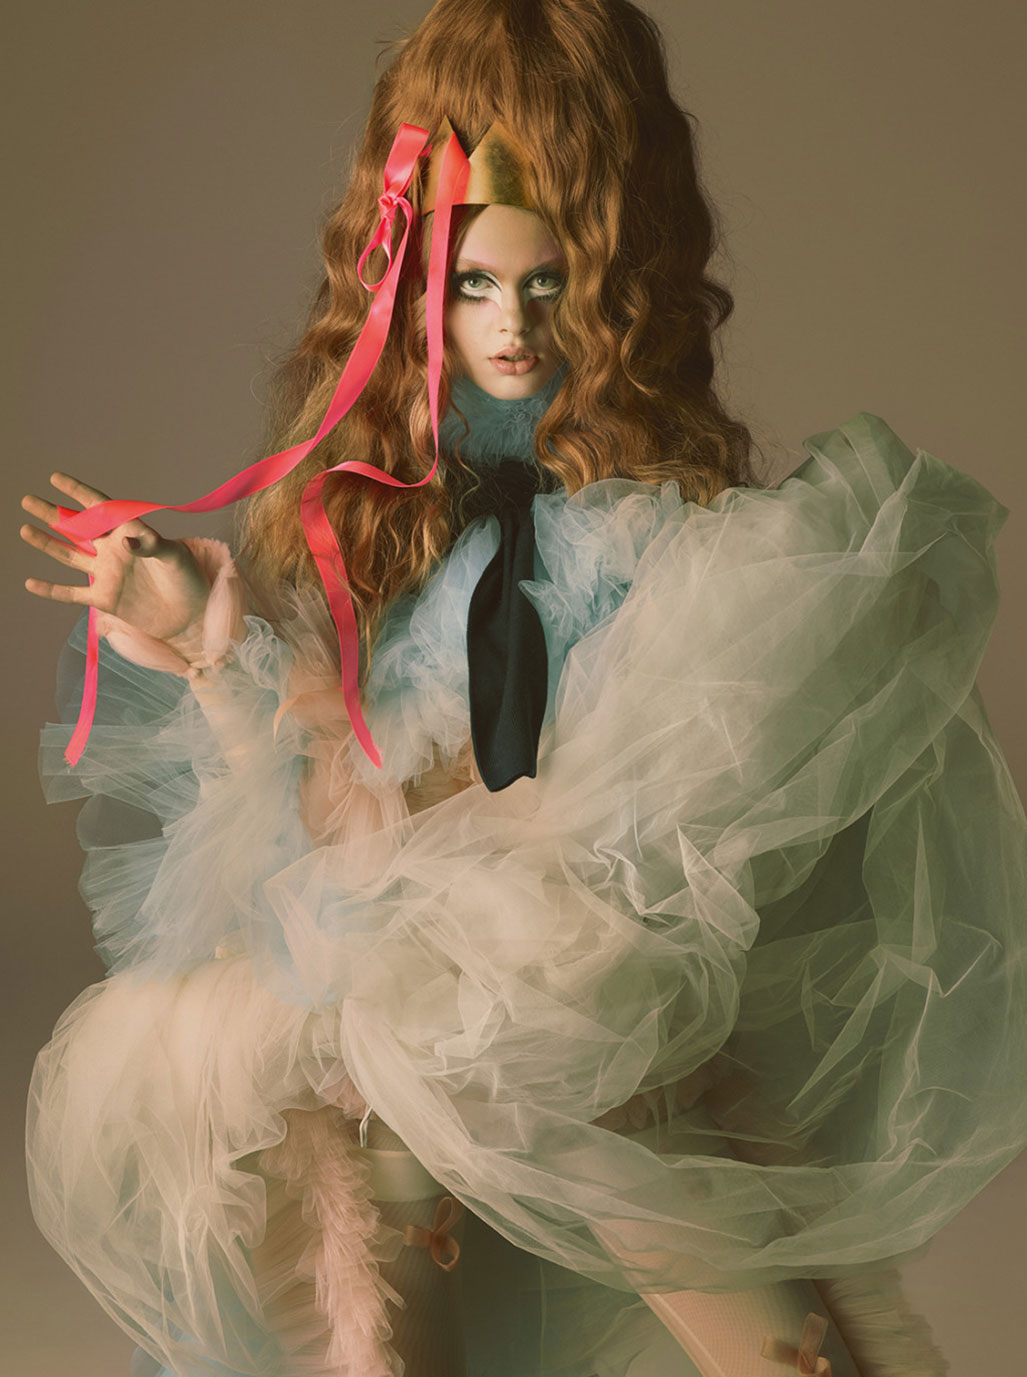 Pink Opaque / Ariel Nicholson by Mert Alas and Marcus Piggott / Love Magazine fall/winter 2018